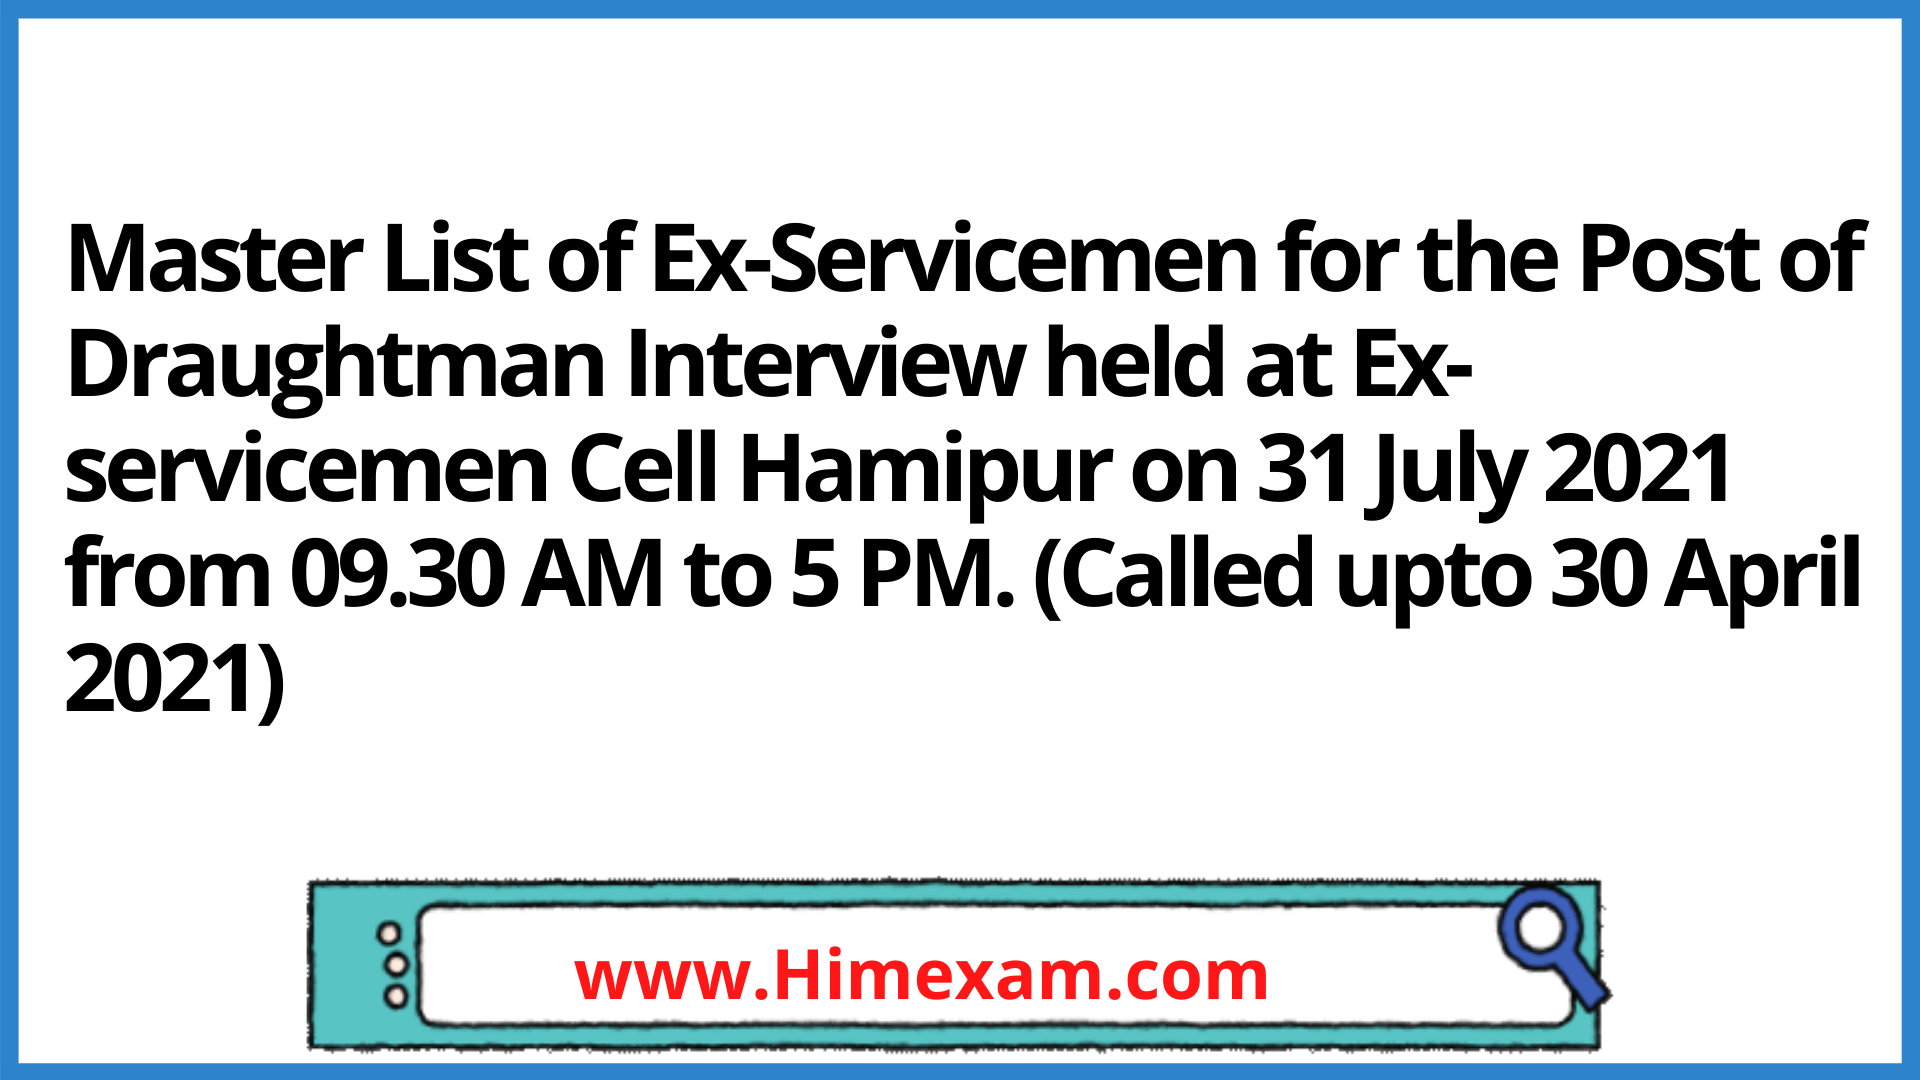 Master List of Ex-Servicemen for the Post of Draughtman Interview held at Ex-servicemen Cell Hamipur on 31 July 2021 from 09.30 AM to 5 PM. (Called upto 30 April 2021)